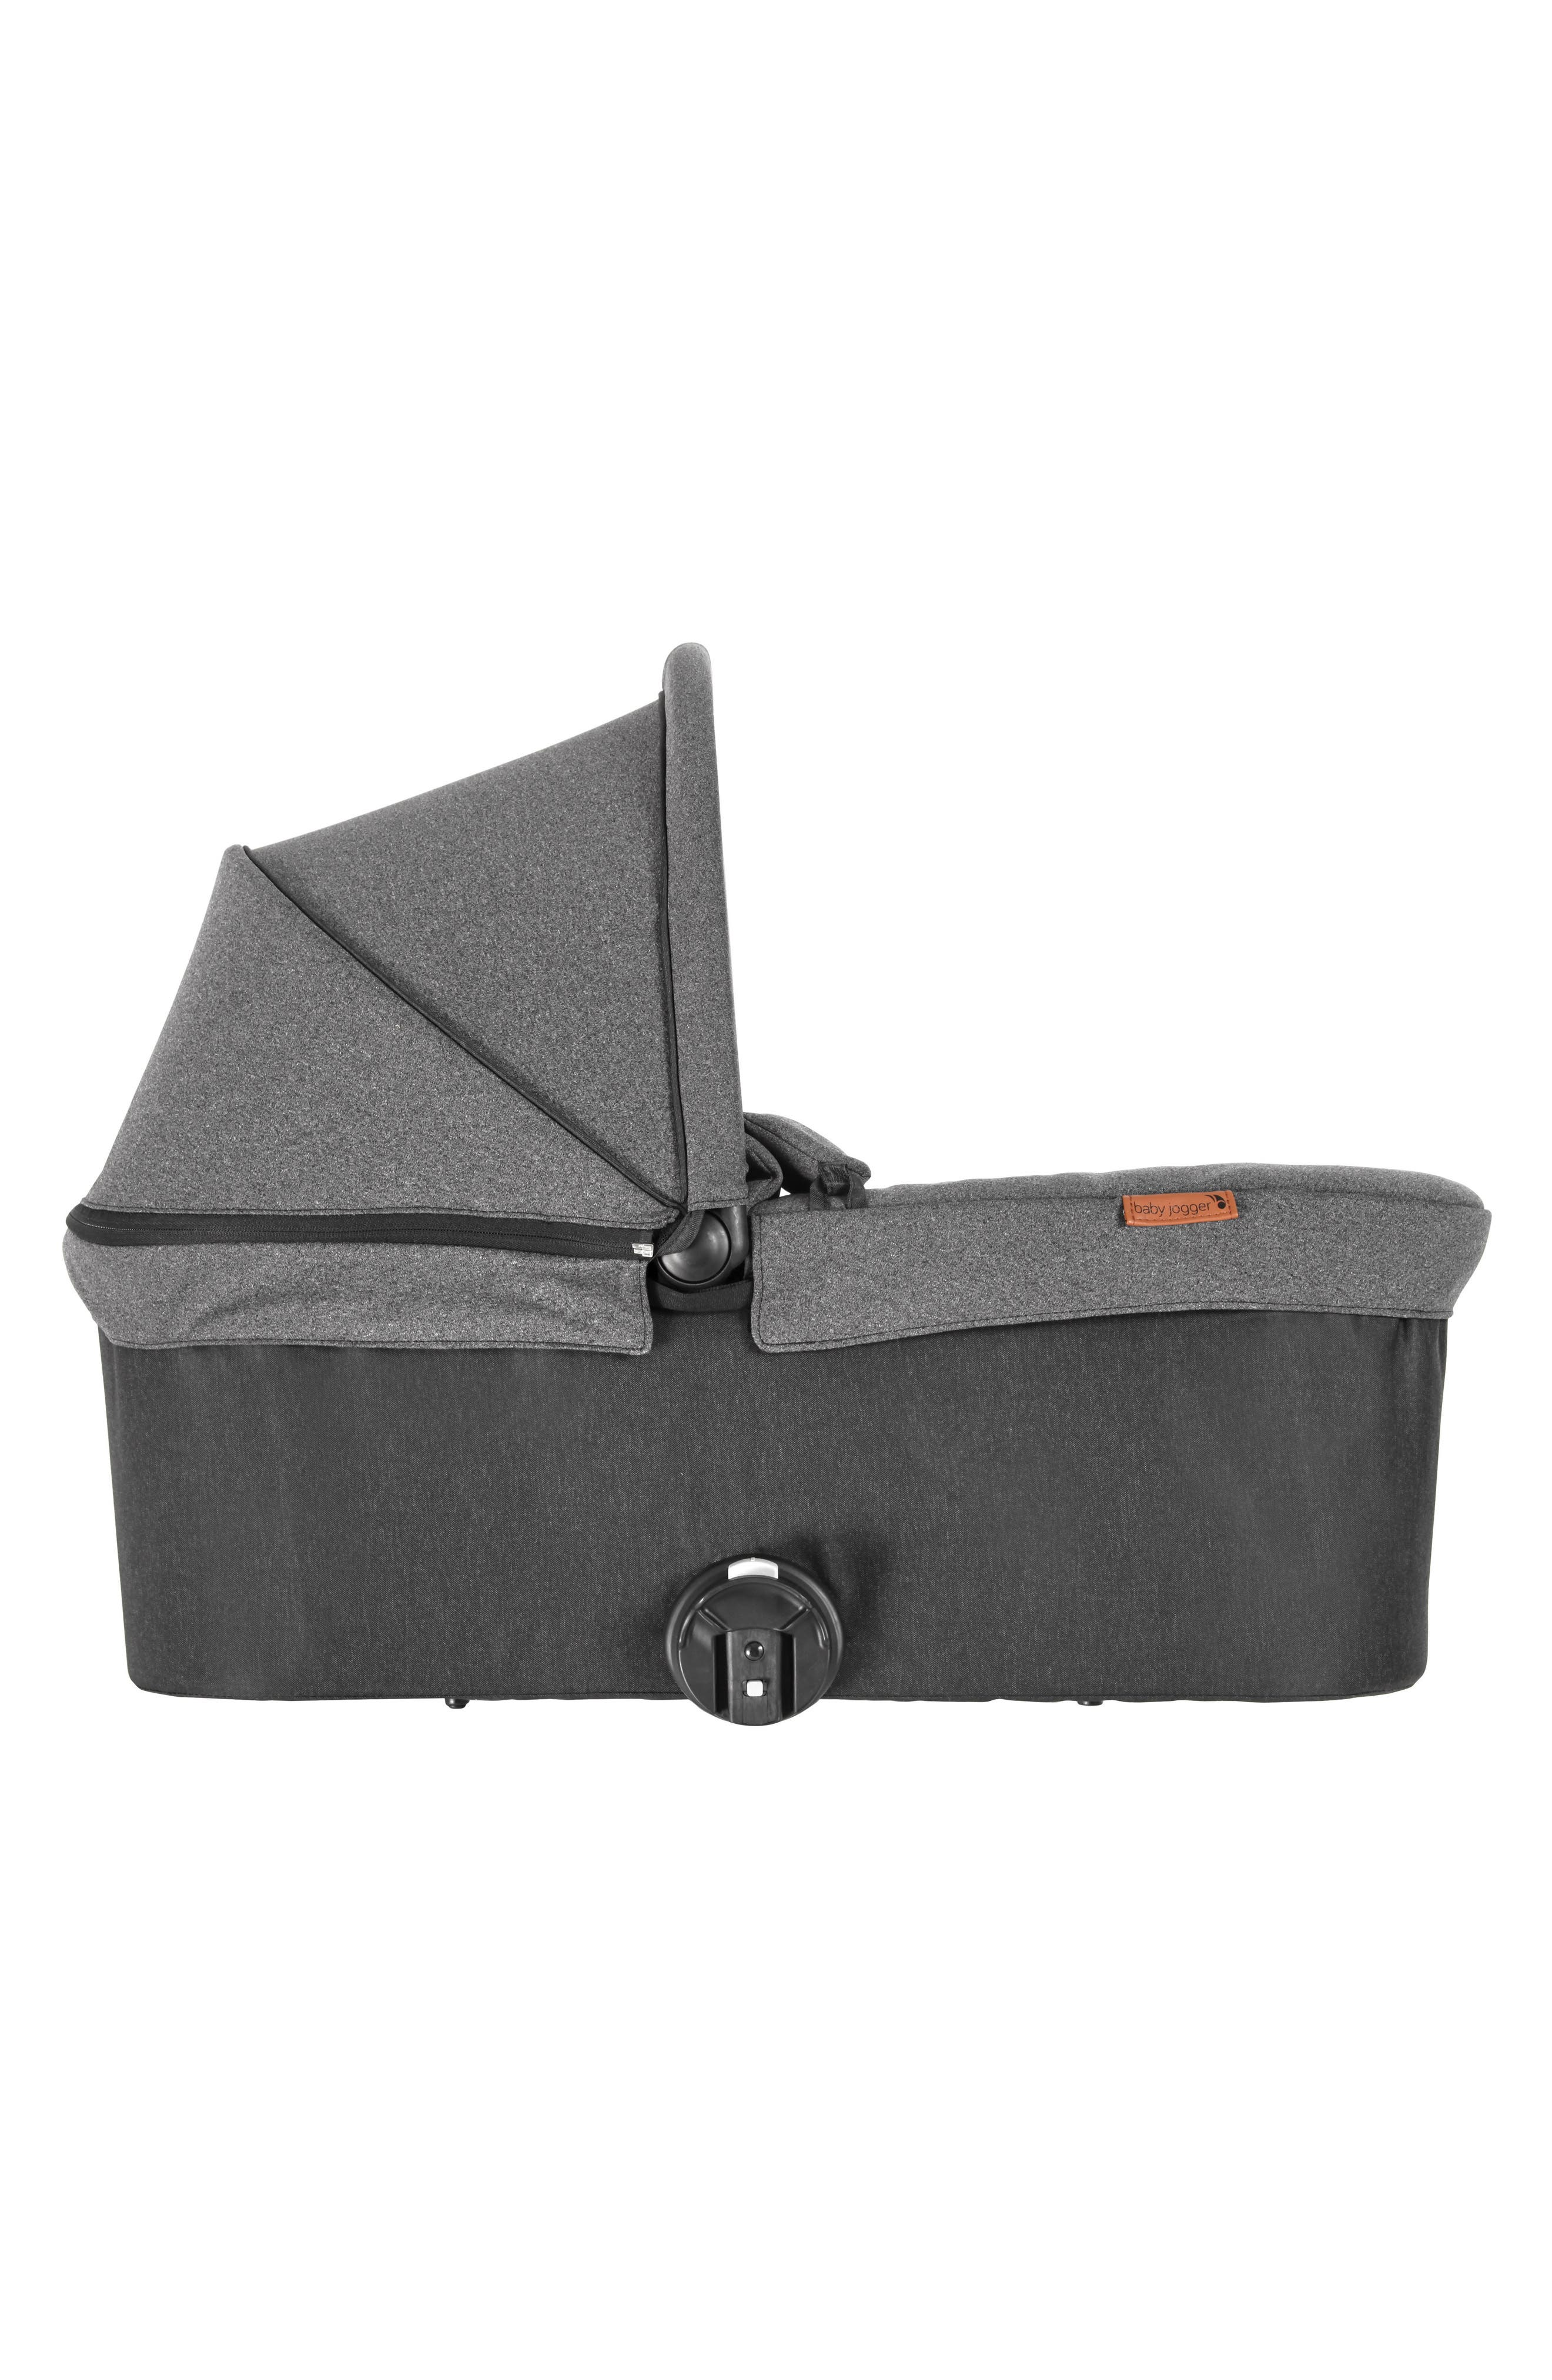 Deluxe Pram Converter Kit for City Mini<sup>®</sup> 2018 Special Edition 10-Year Anniversary All-Terrain Stroller,                             Alternate thumbnail 2, color,                             Grey